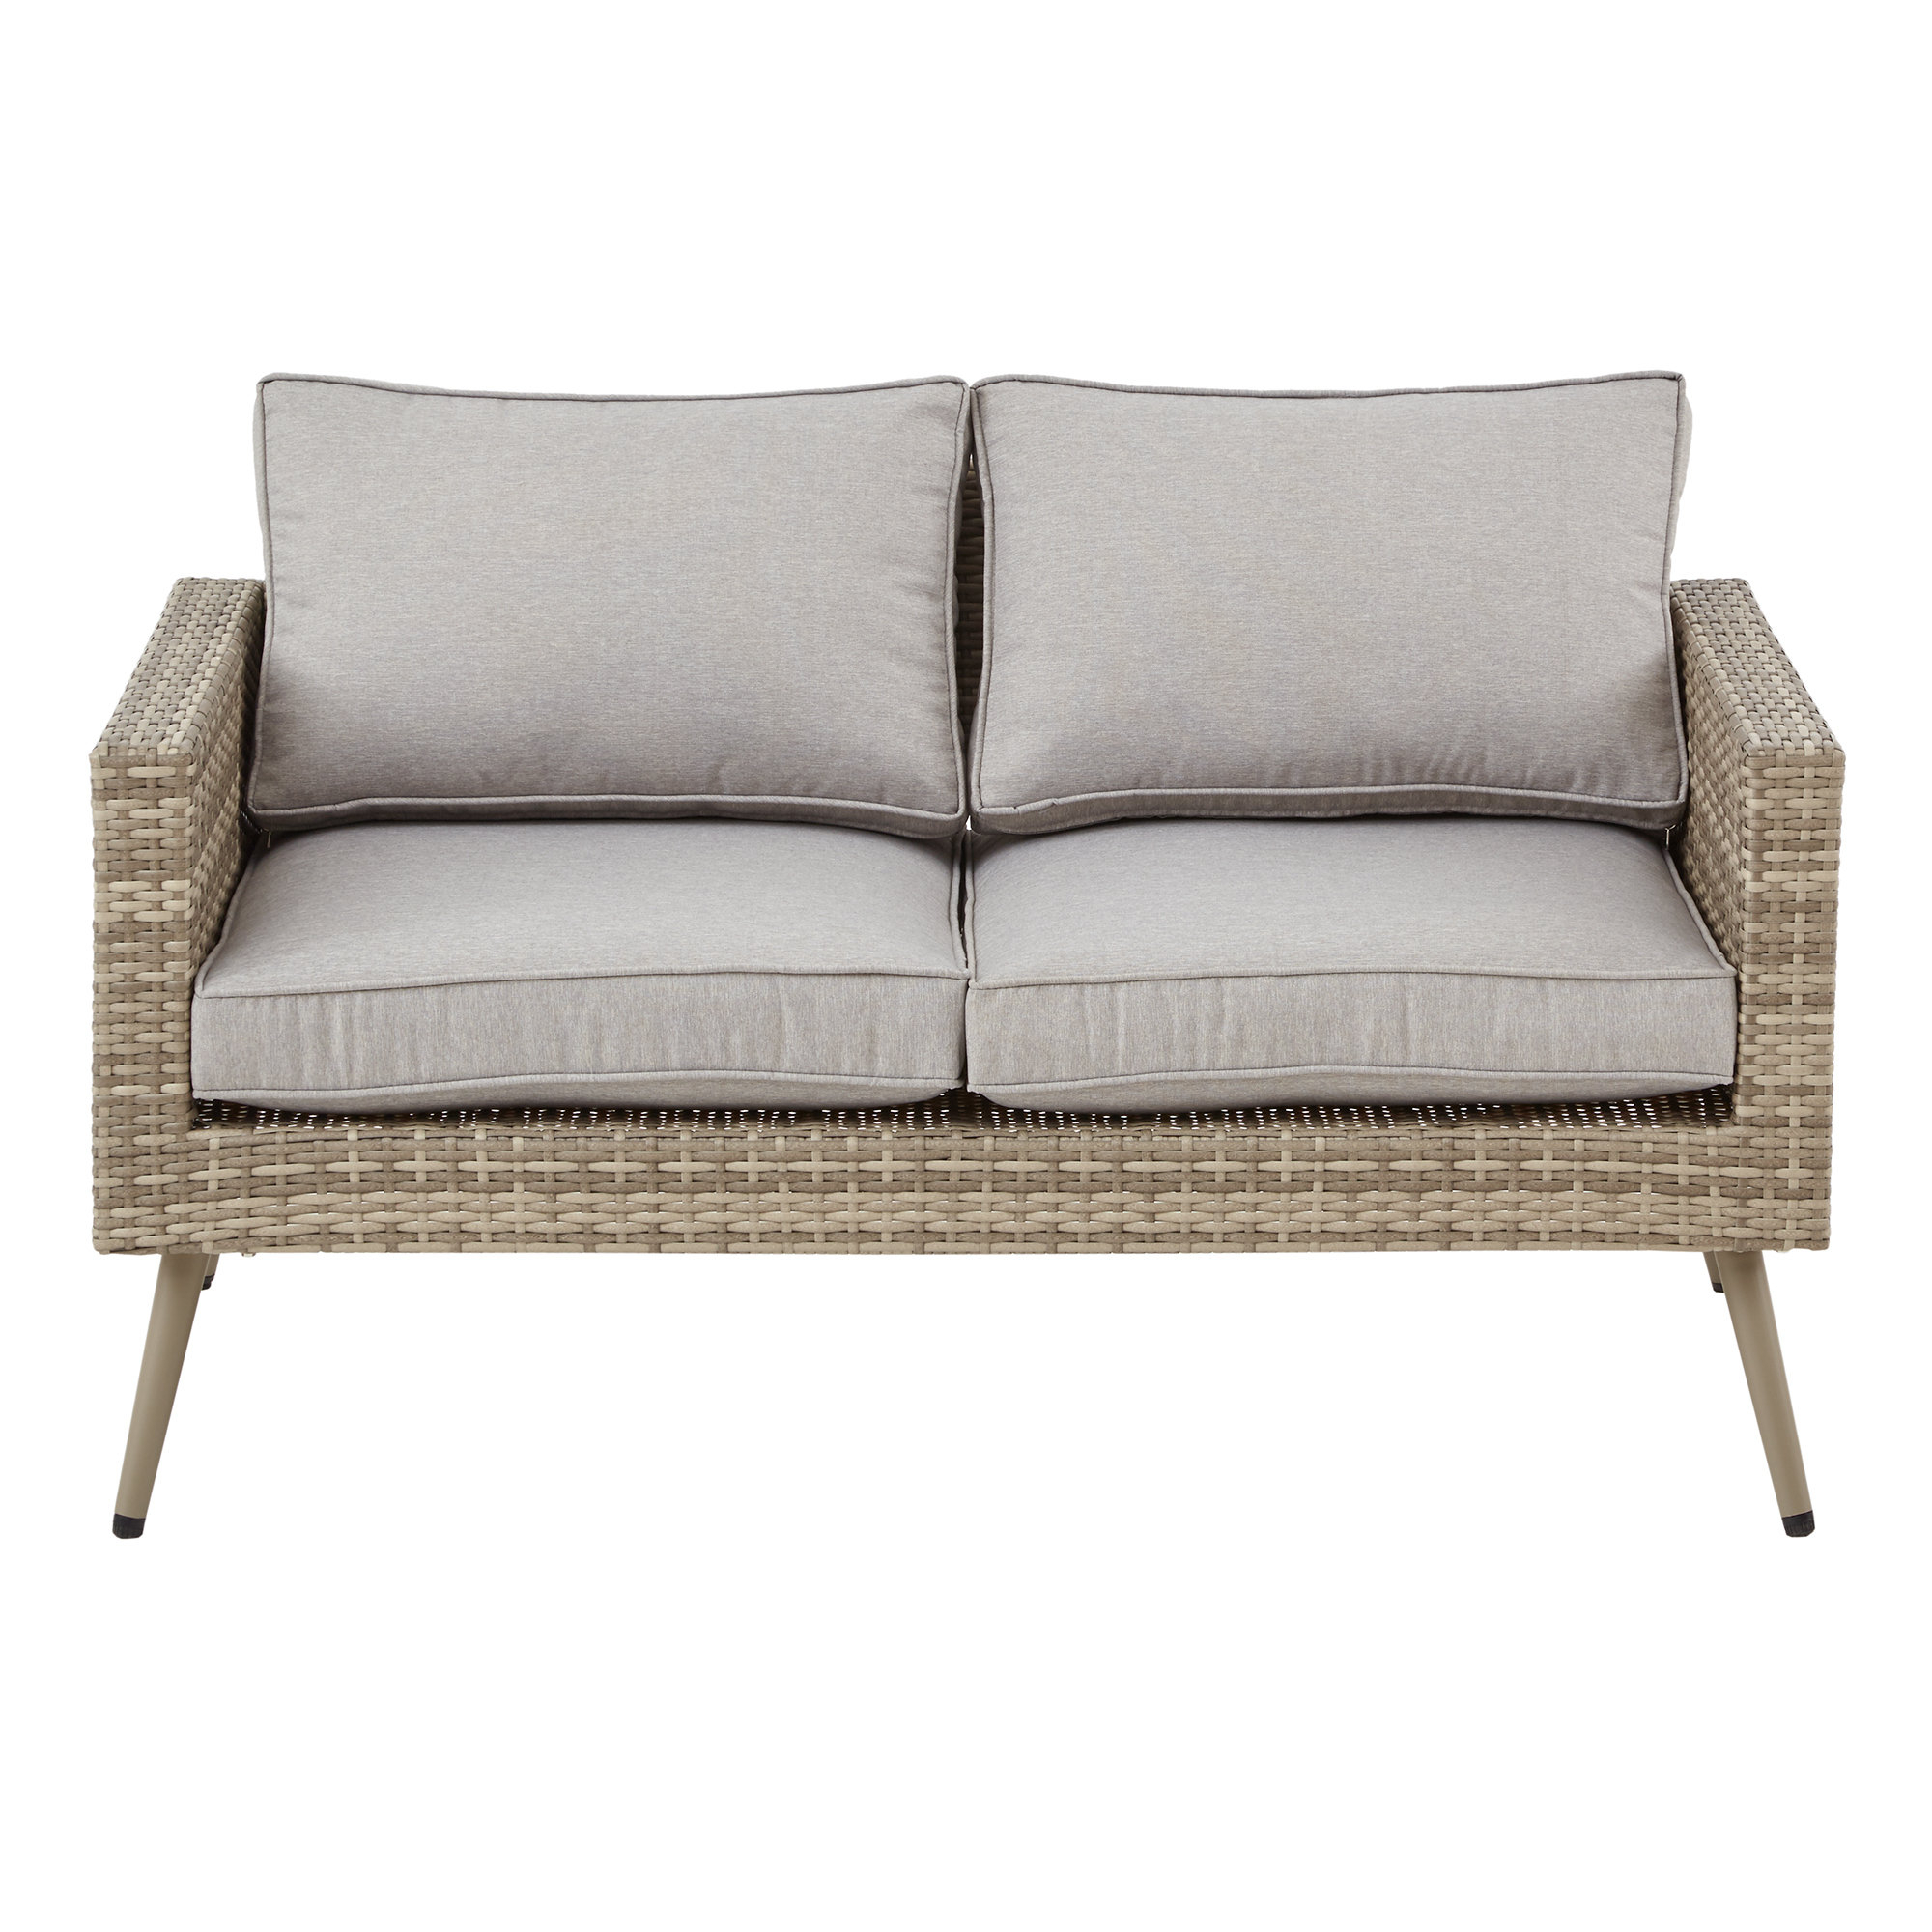 Most Recently Released Pantano Loveseat With Cushions Regarding Alburg Loveseats With Cushions (View 5 of 25)